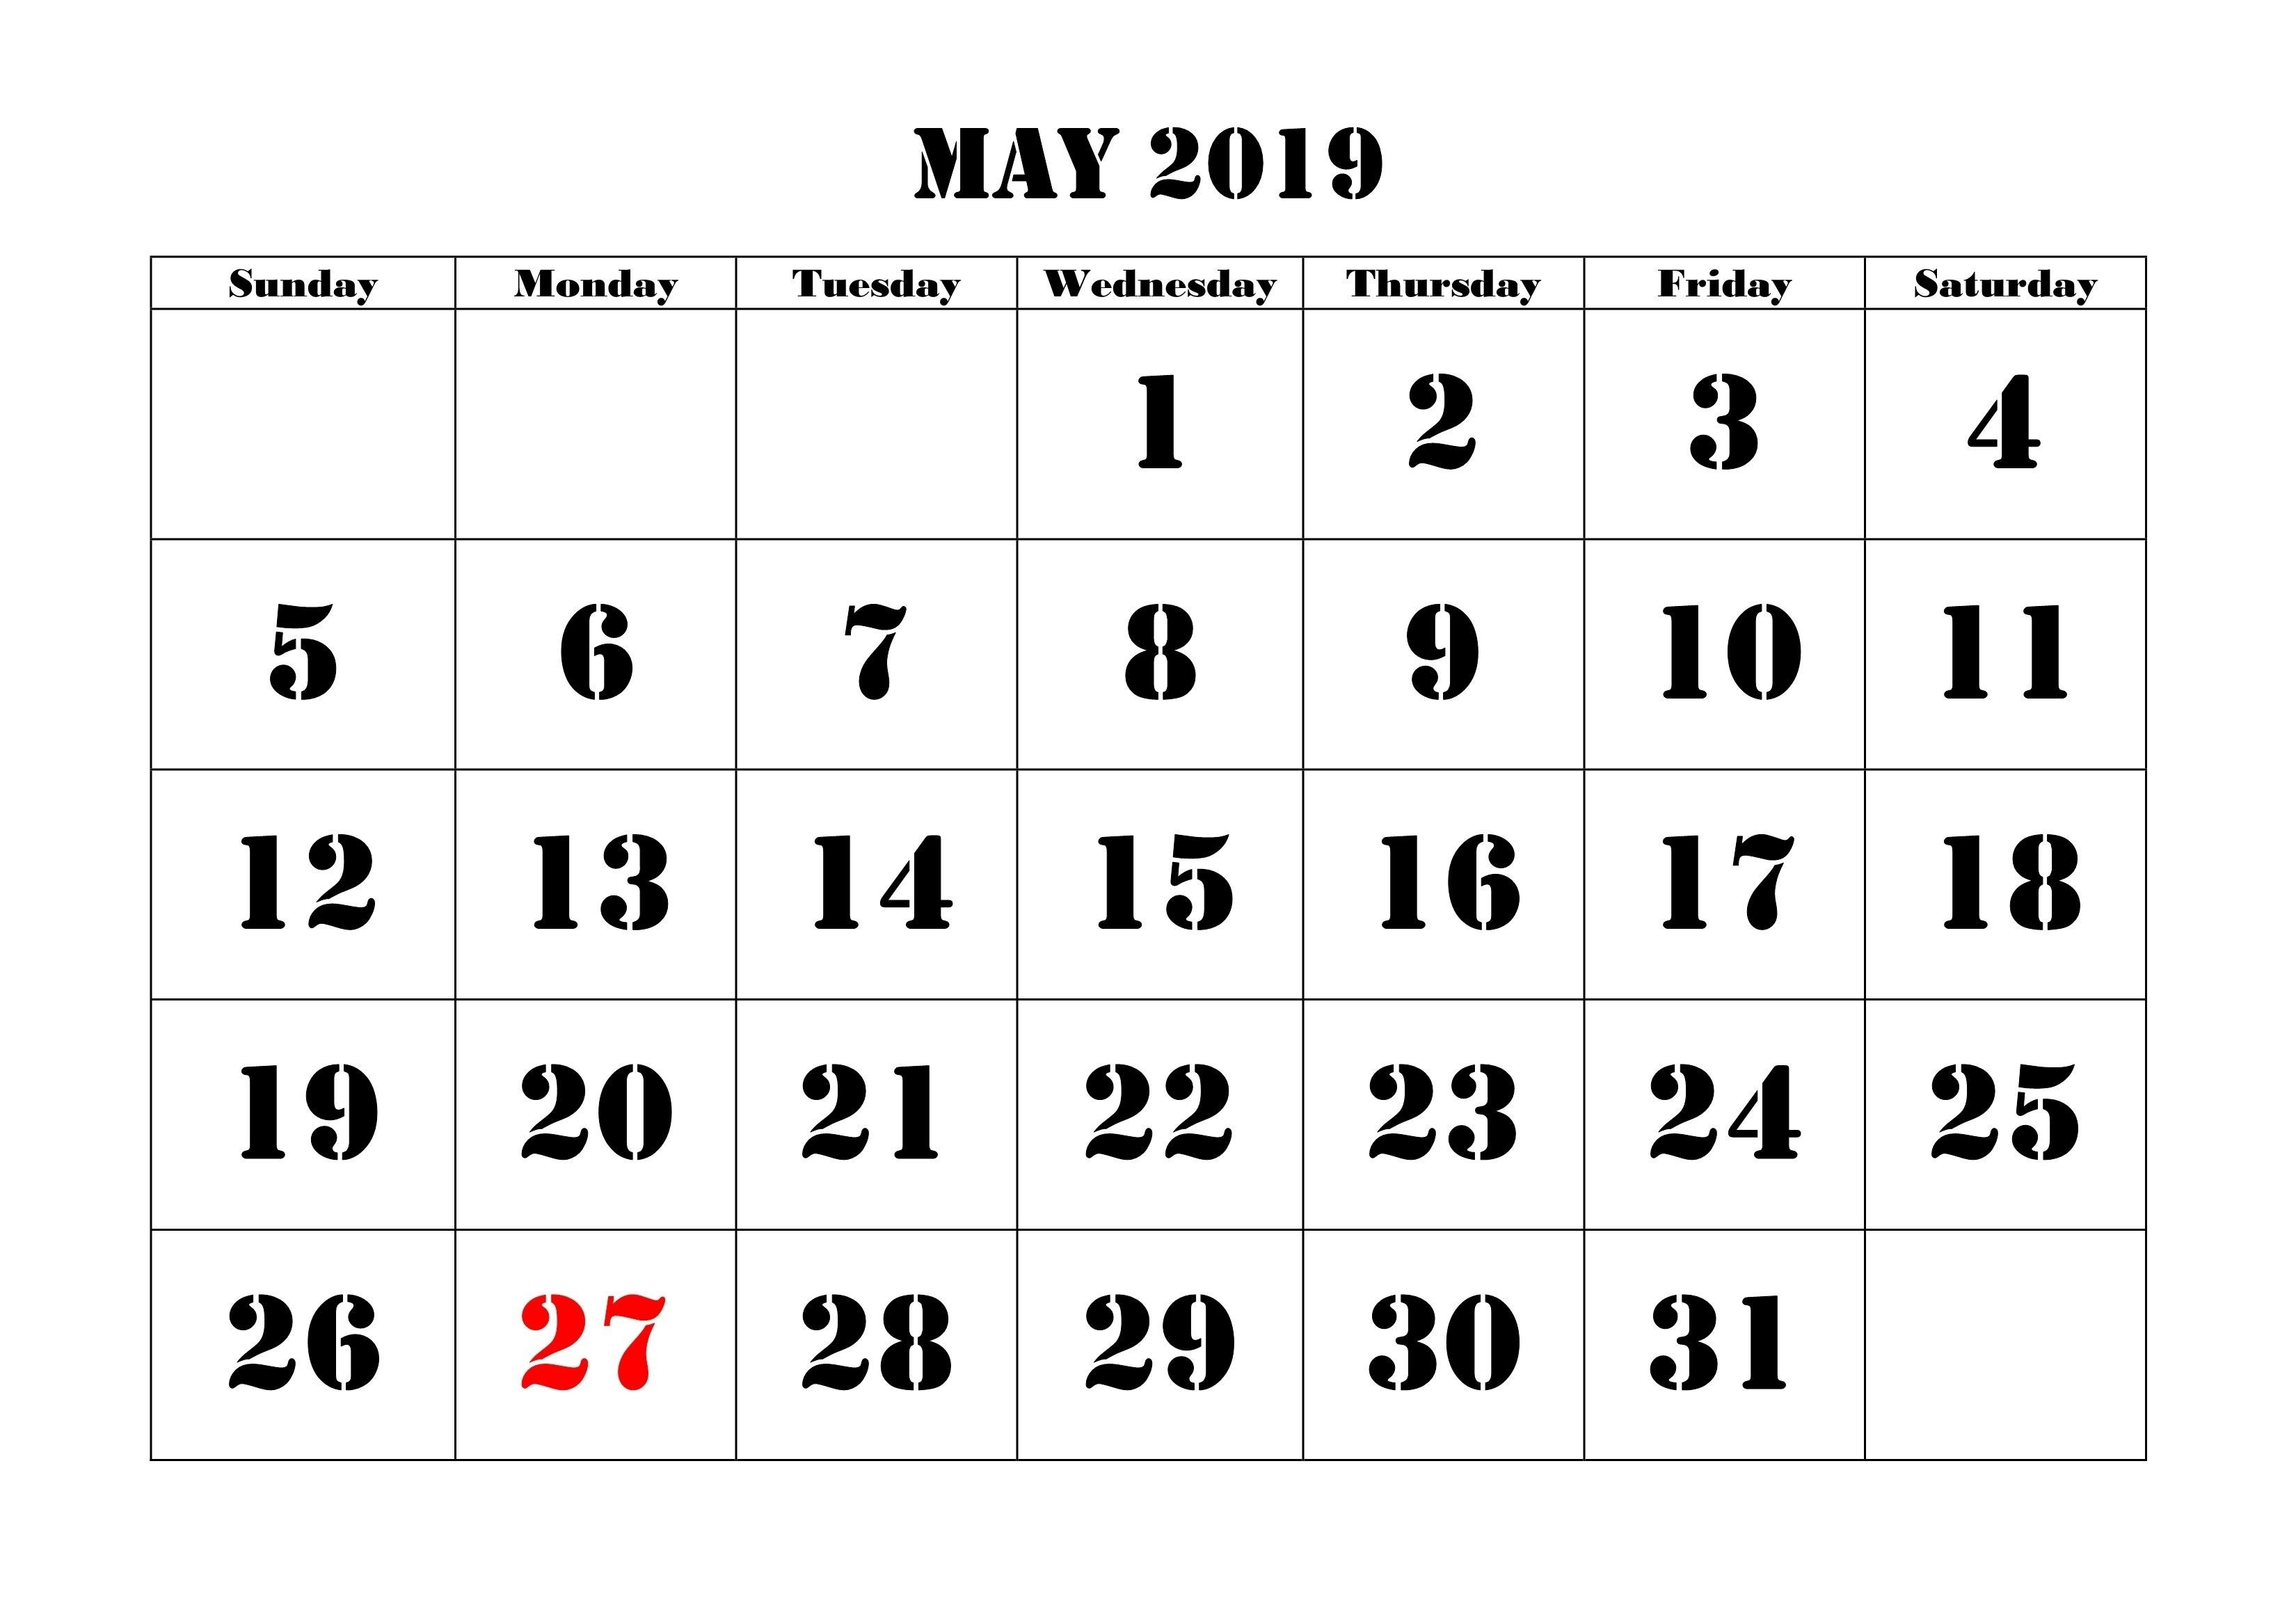 May 2019 Printable Calendar For Landscape And Vertical | May-January 2020 Calendar Printable Wincalendar